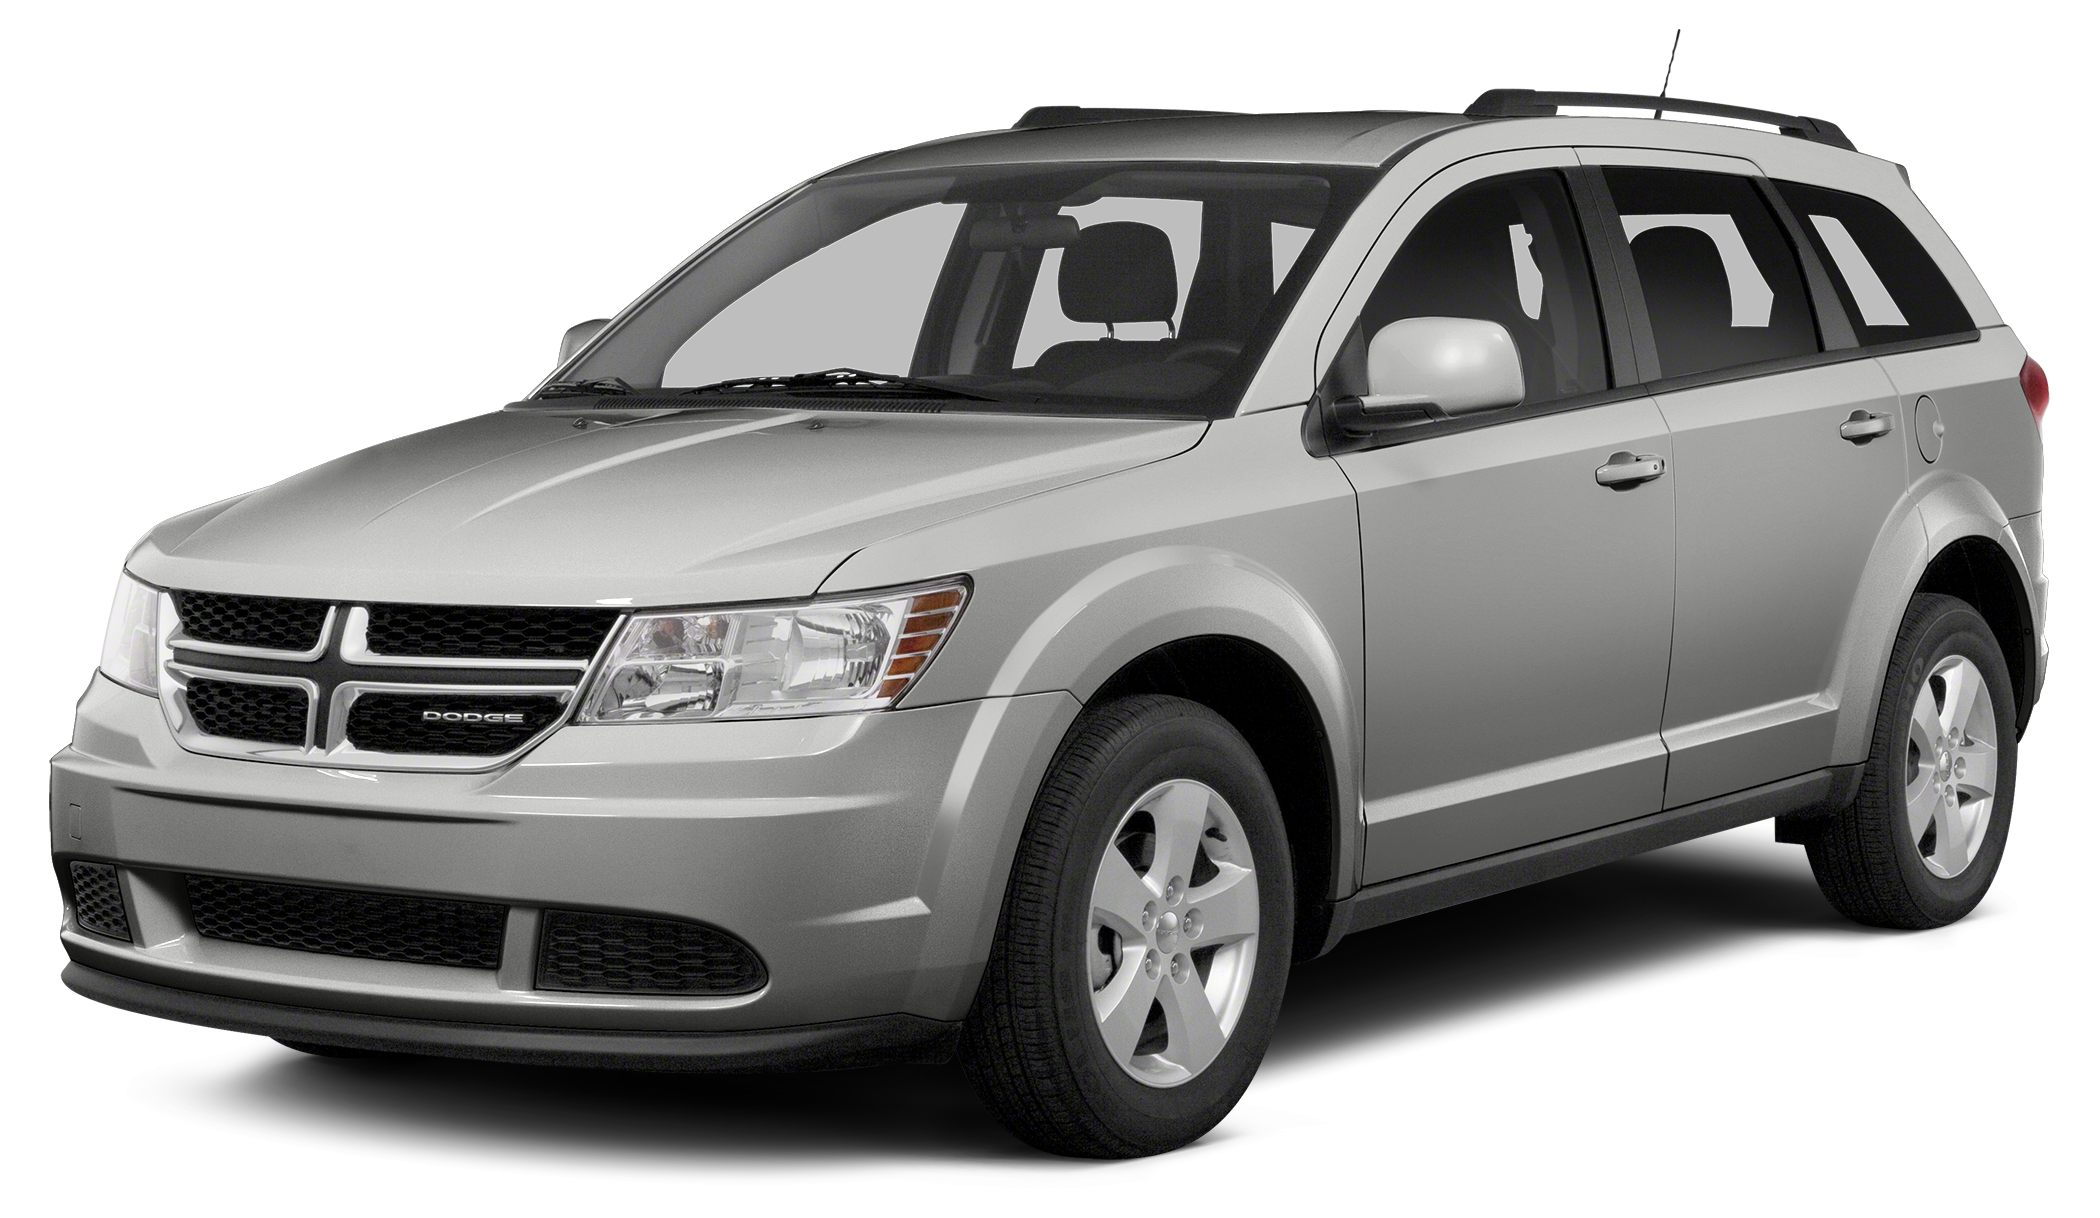 2013 Dodge Journey SXT DISCLAIMER We are excited to offer this vehicle to you but it is currently